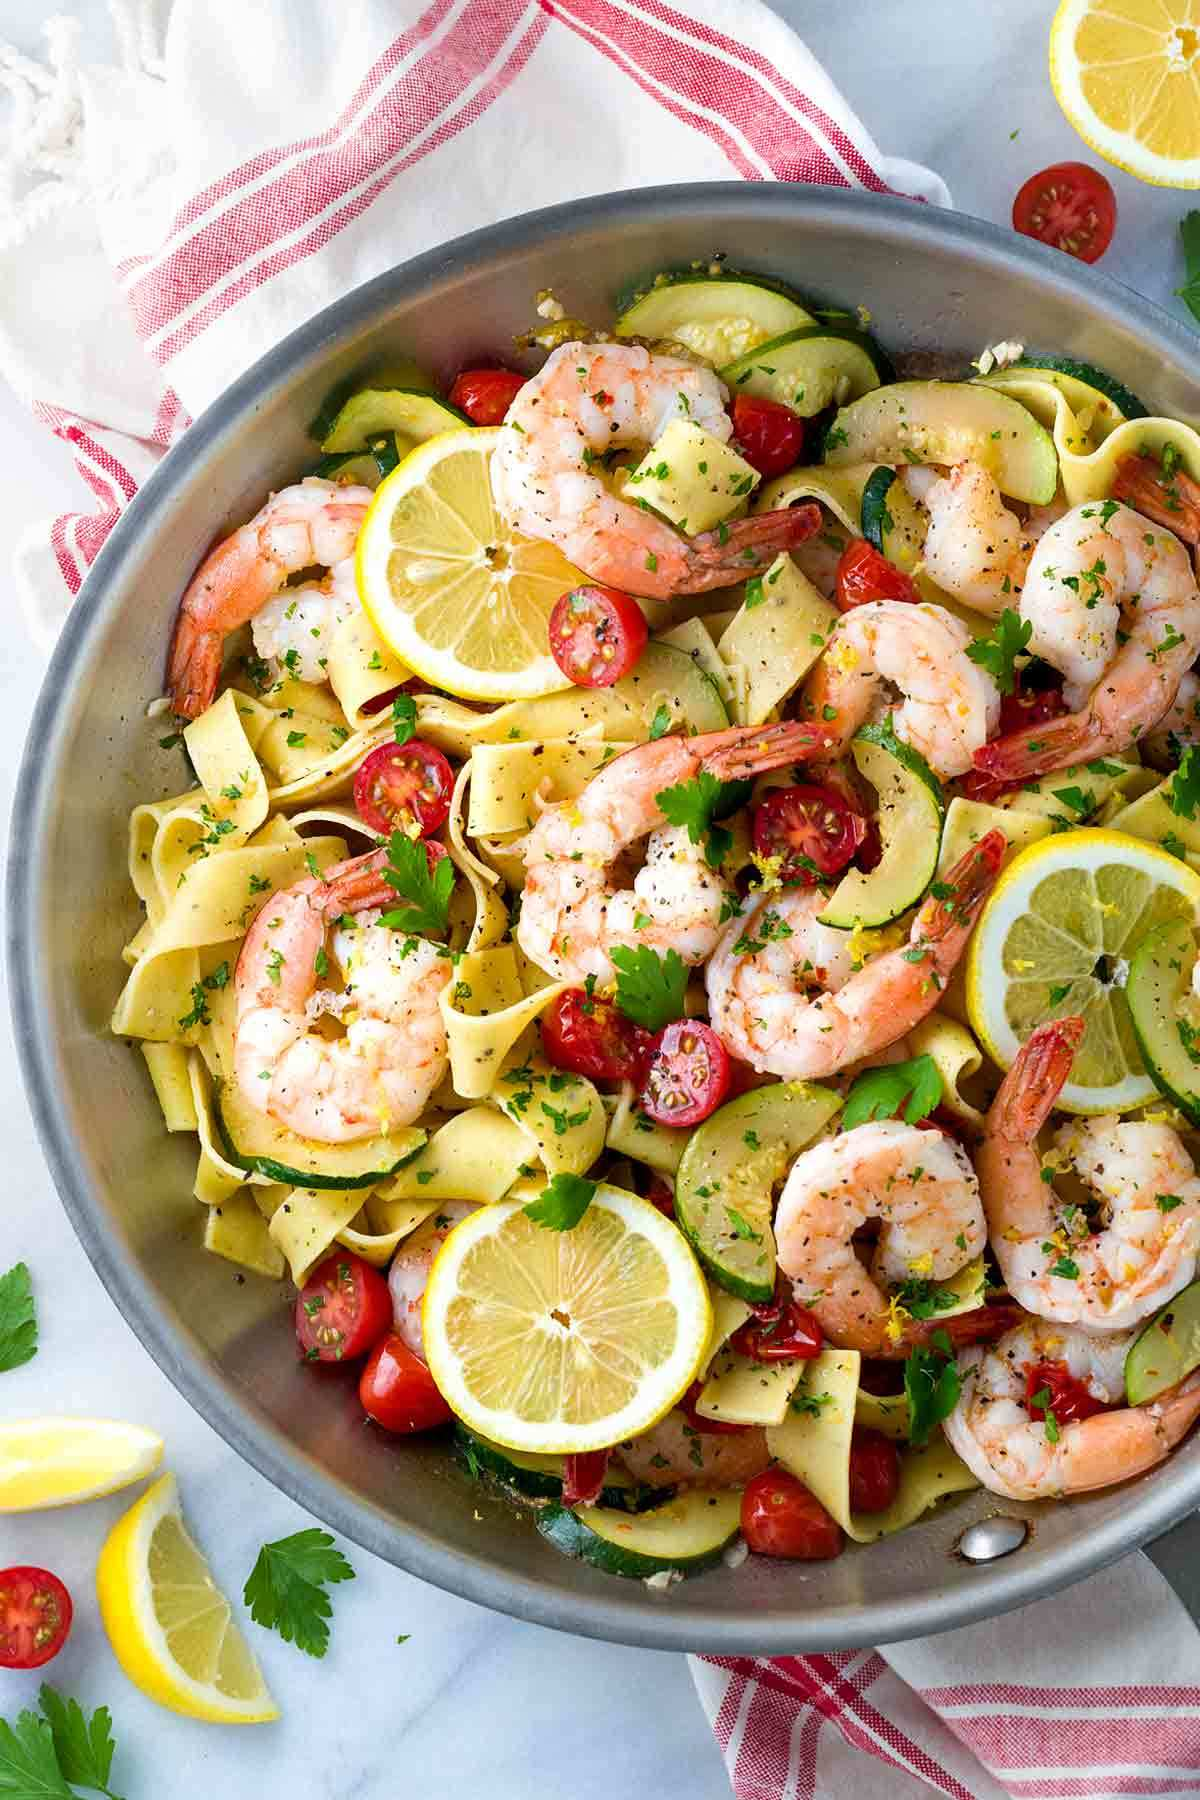 Lemon-Garlic Pasta with Vegetables and Shrimp